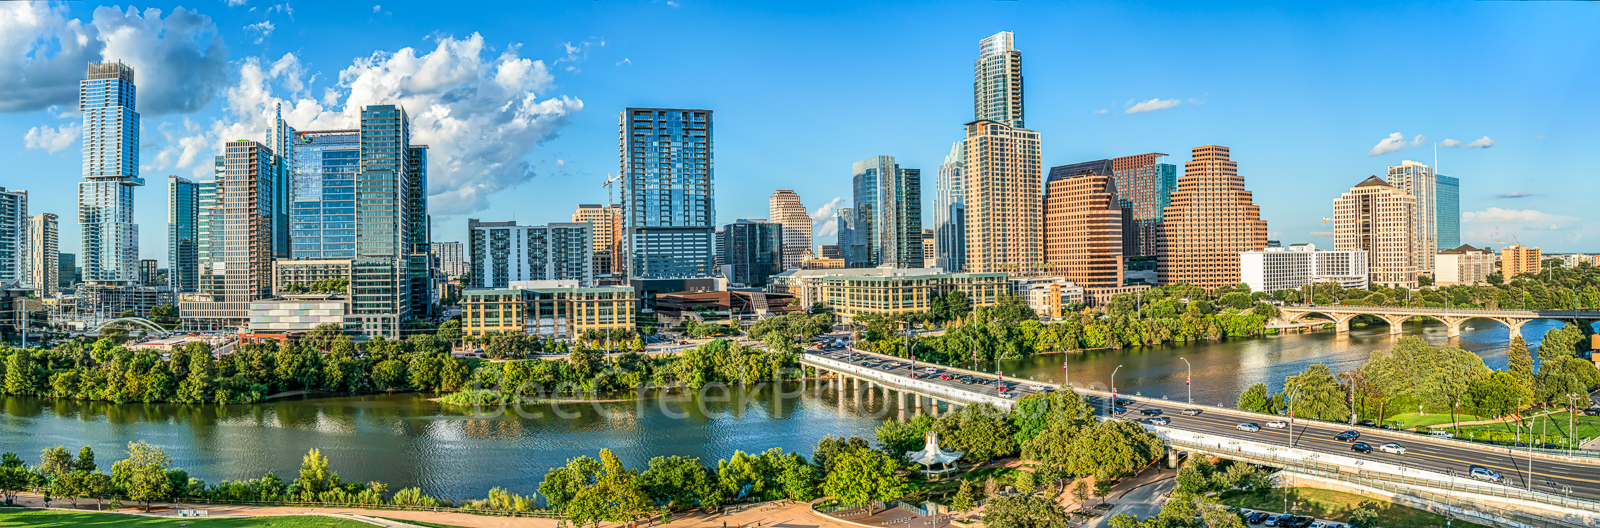 Aerial Austin Skyline, Austin, skyline, austin skylie pictures, aerial, lady bird lake, hike and bike trail, cityscape, water, pano, panorama, tallest building, Independent, Jingle, Google, Northshore